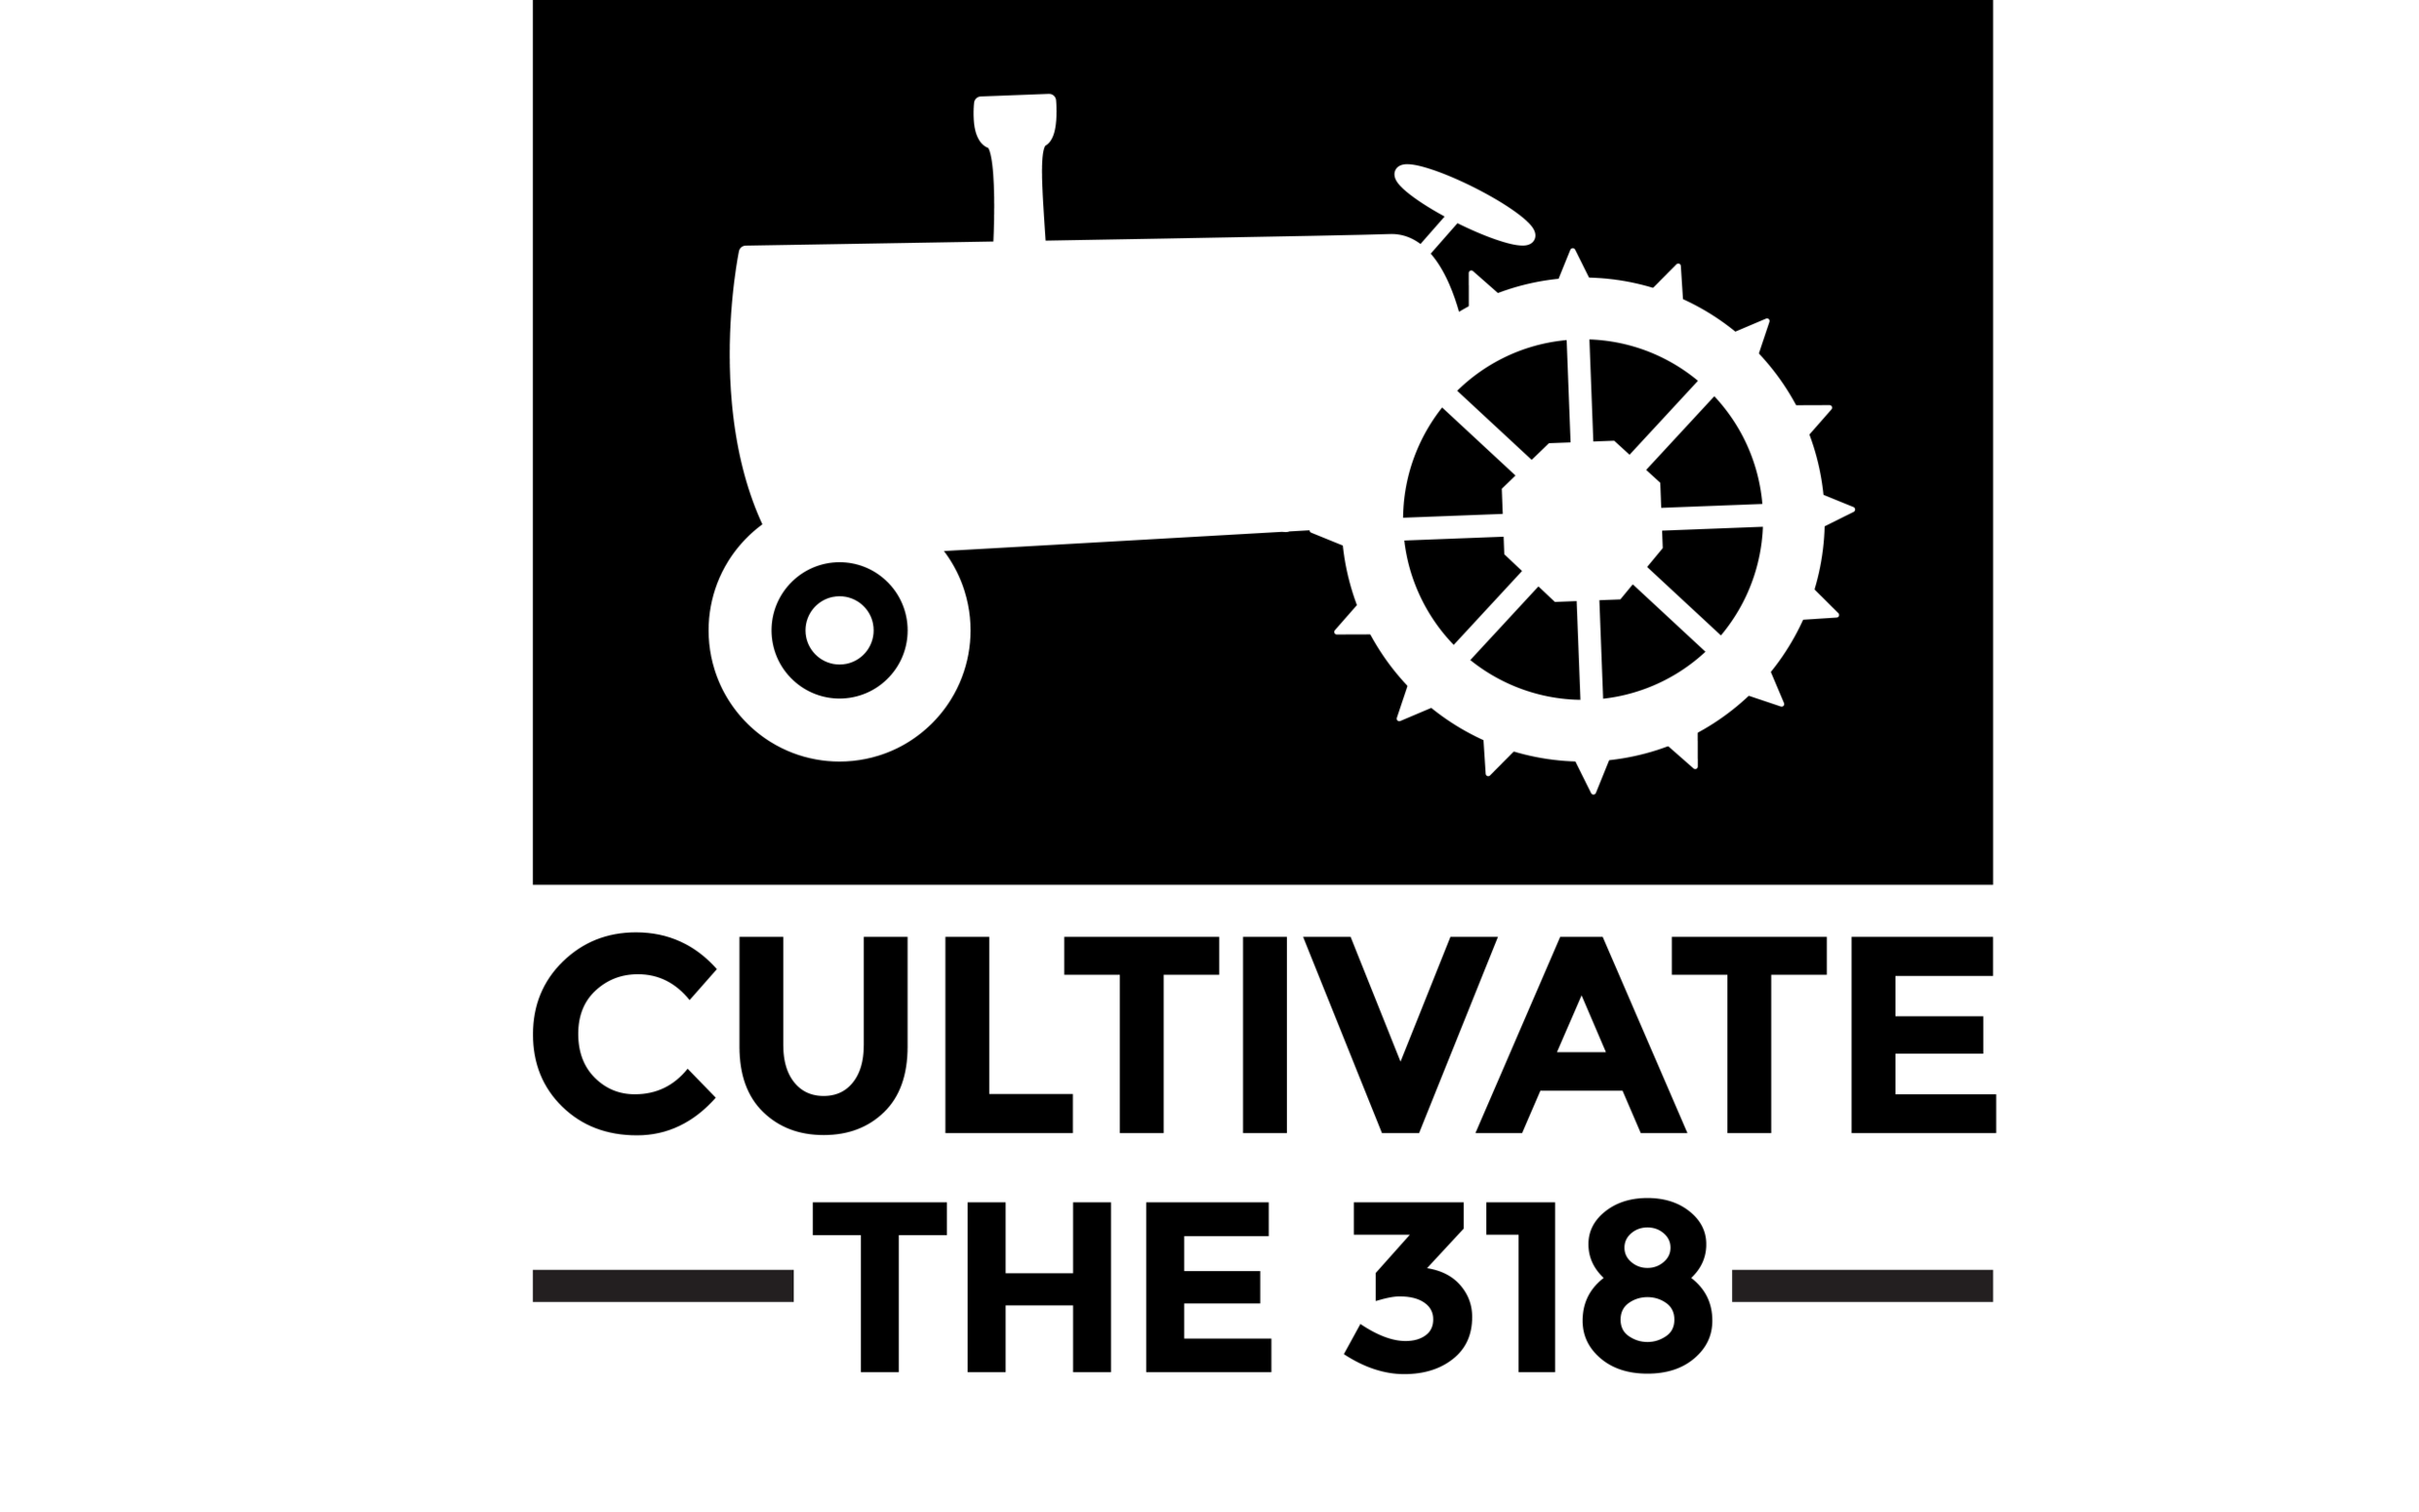 Cultivate The 318